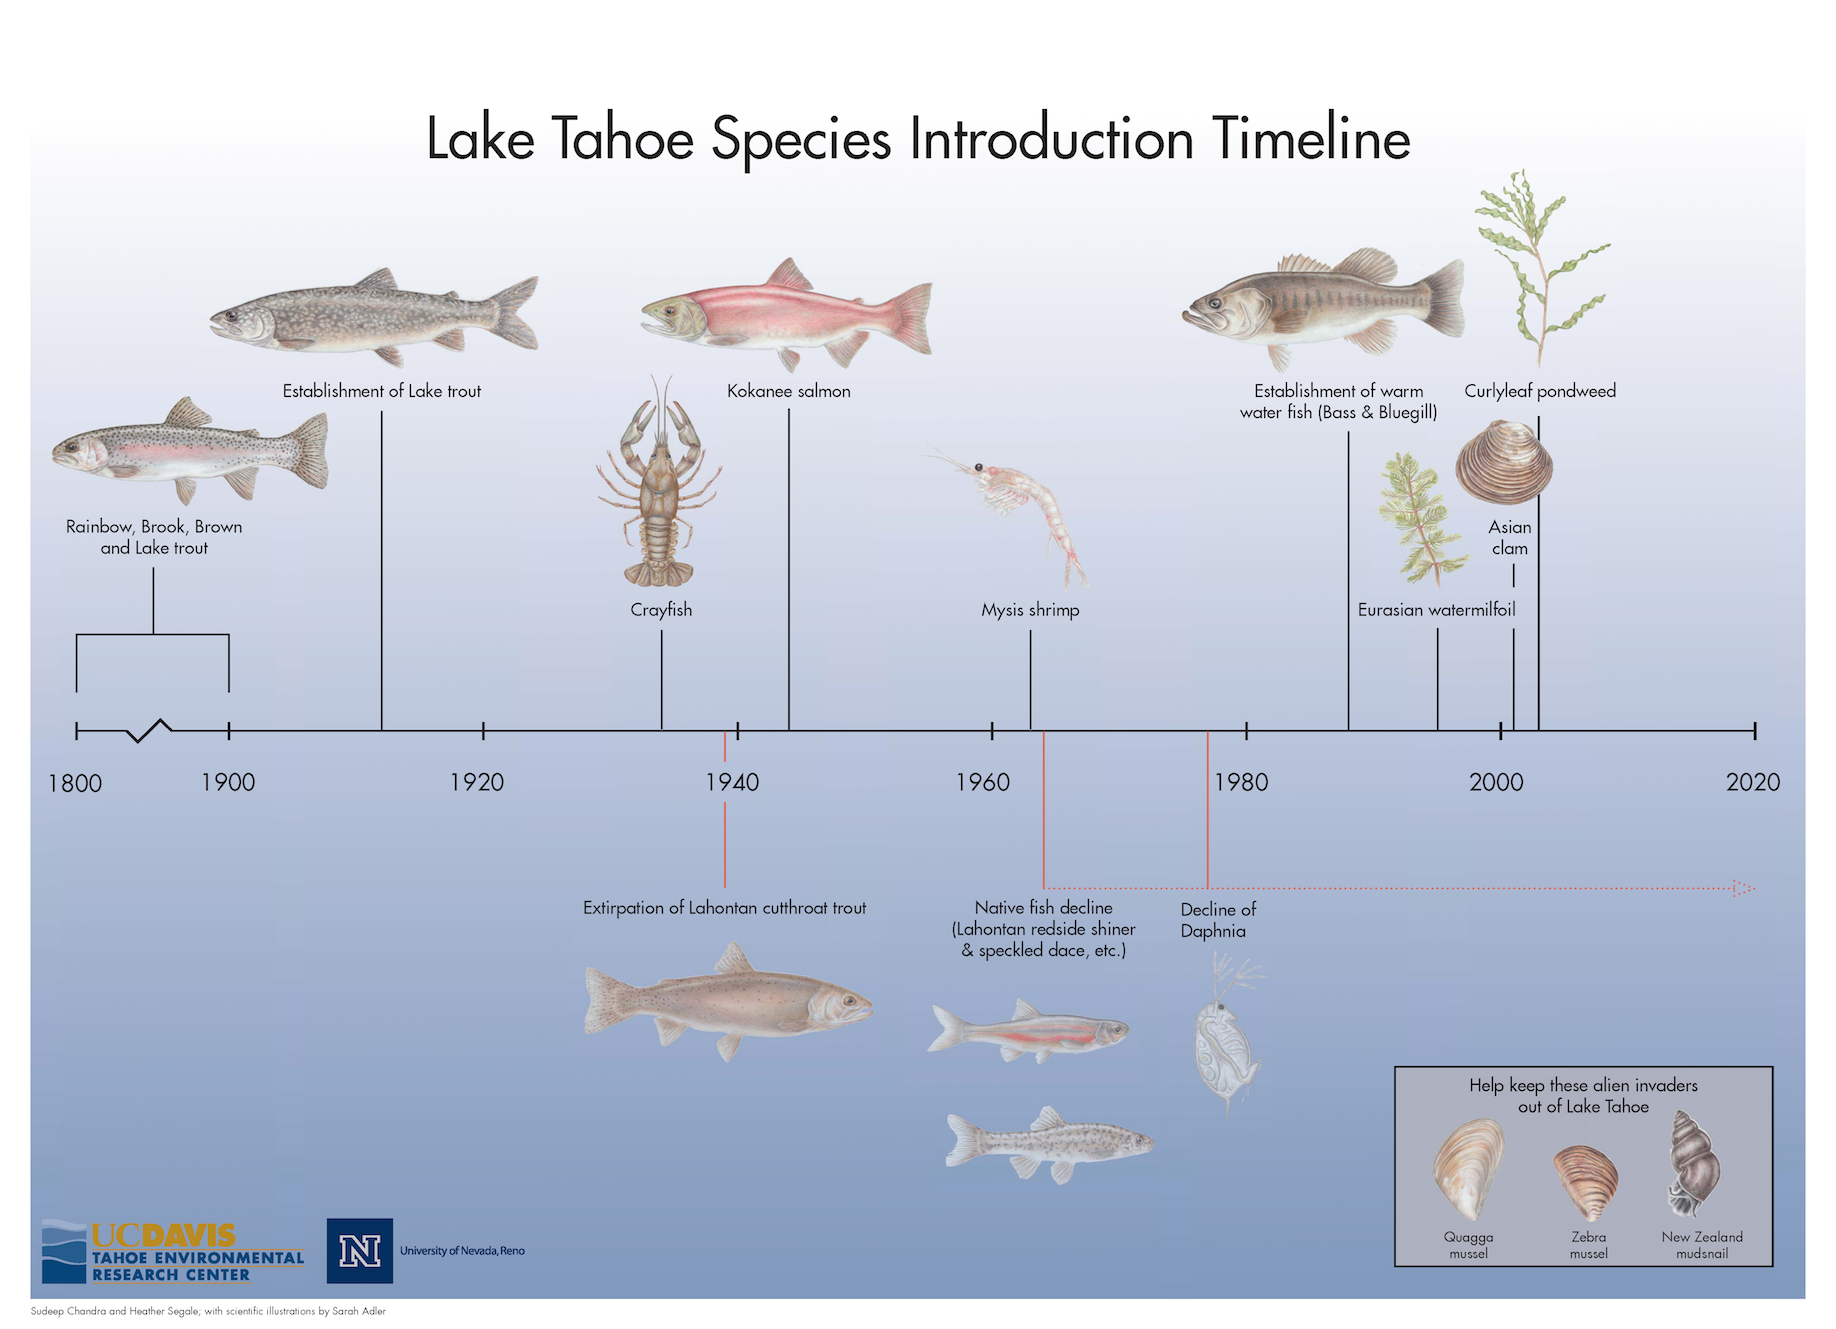 Lake Tahoe Invasive Species Timeline